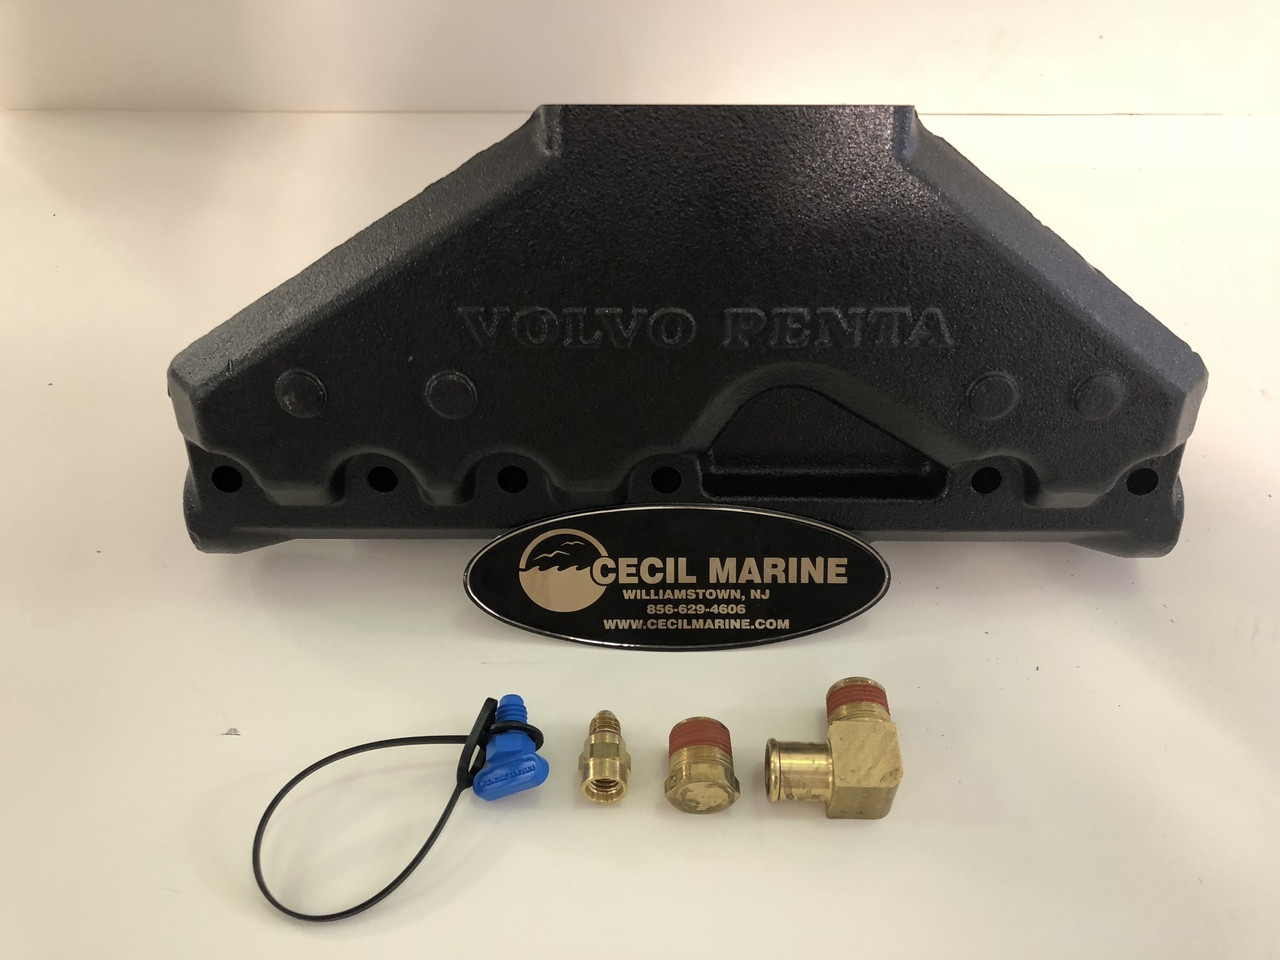 $1499.00 & FREE SHIPPING GENUINE PENTA  VOLVO PENTA  4.3L ( V-6 )  MANIFOLD REPLACEMENT KIT    ** GENUINE VOLVO PENTA *** EXHAUST MANIFOLD 3847499 ** In Stock & Ready To Ship!